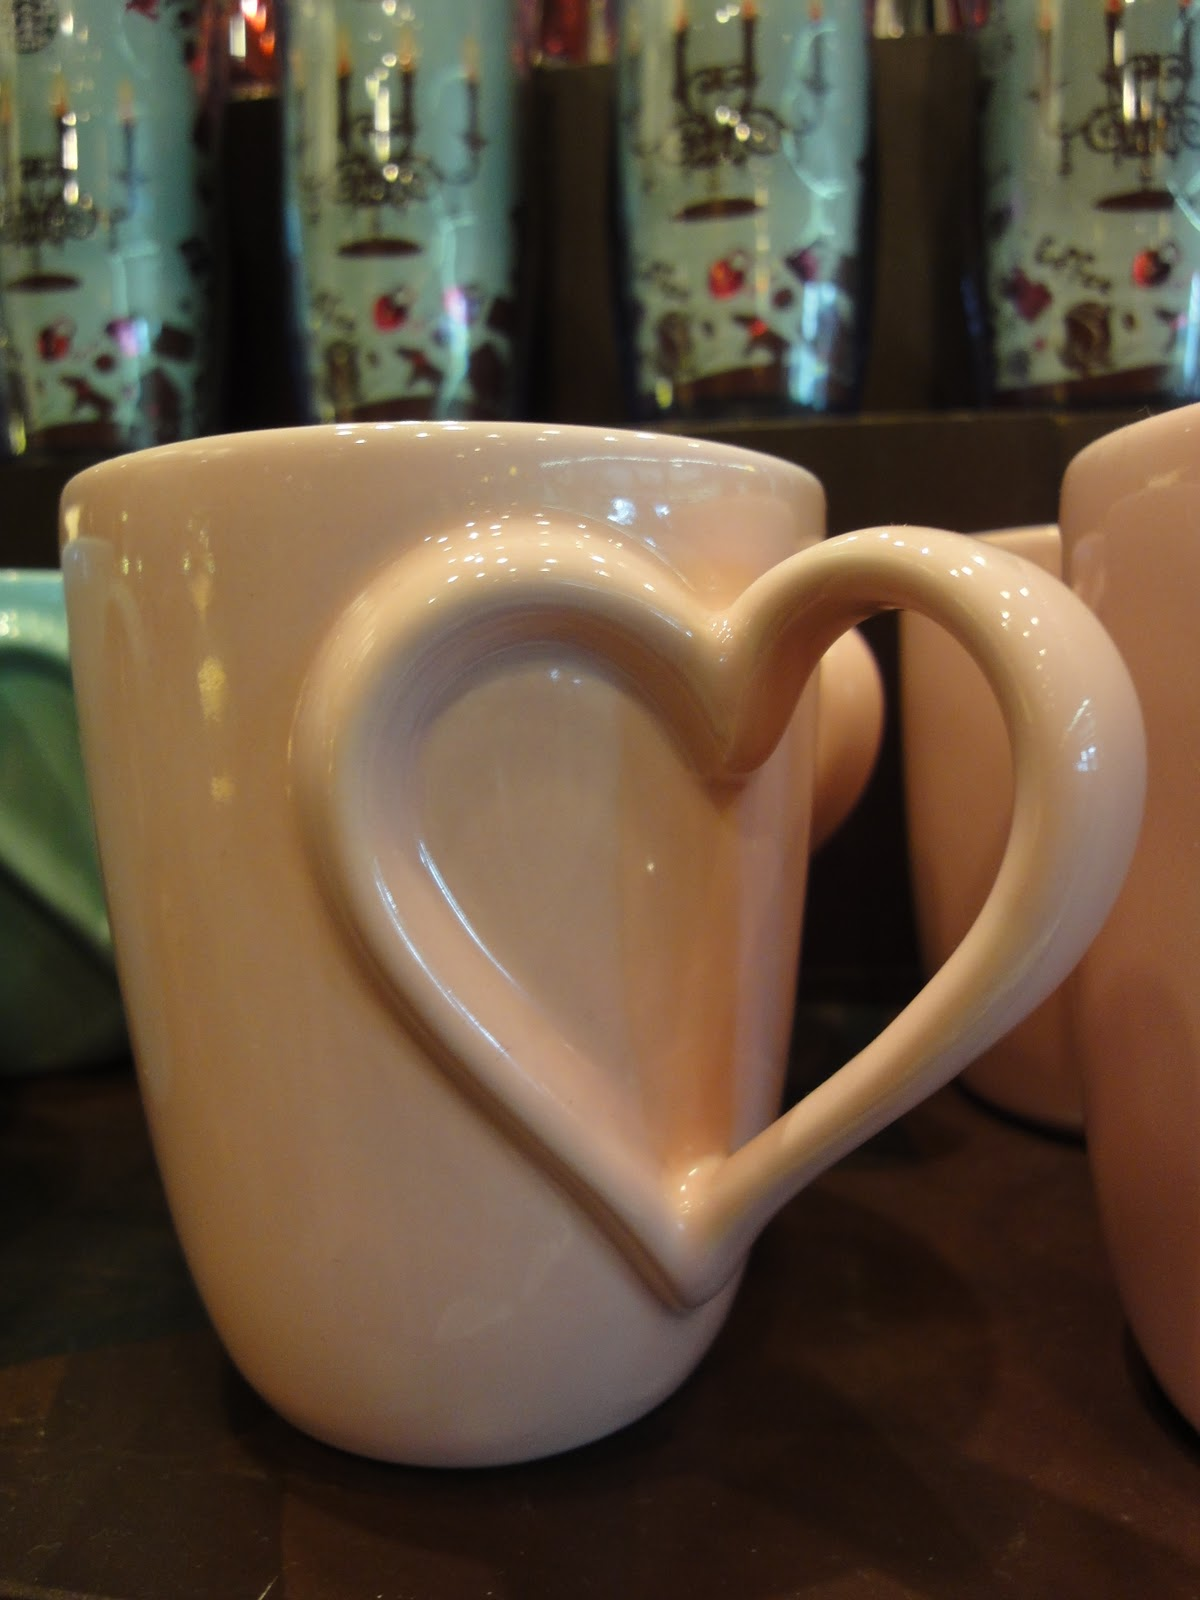 Picture of a mug with a heart shaped handle